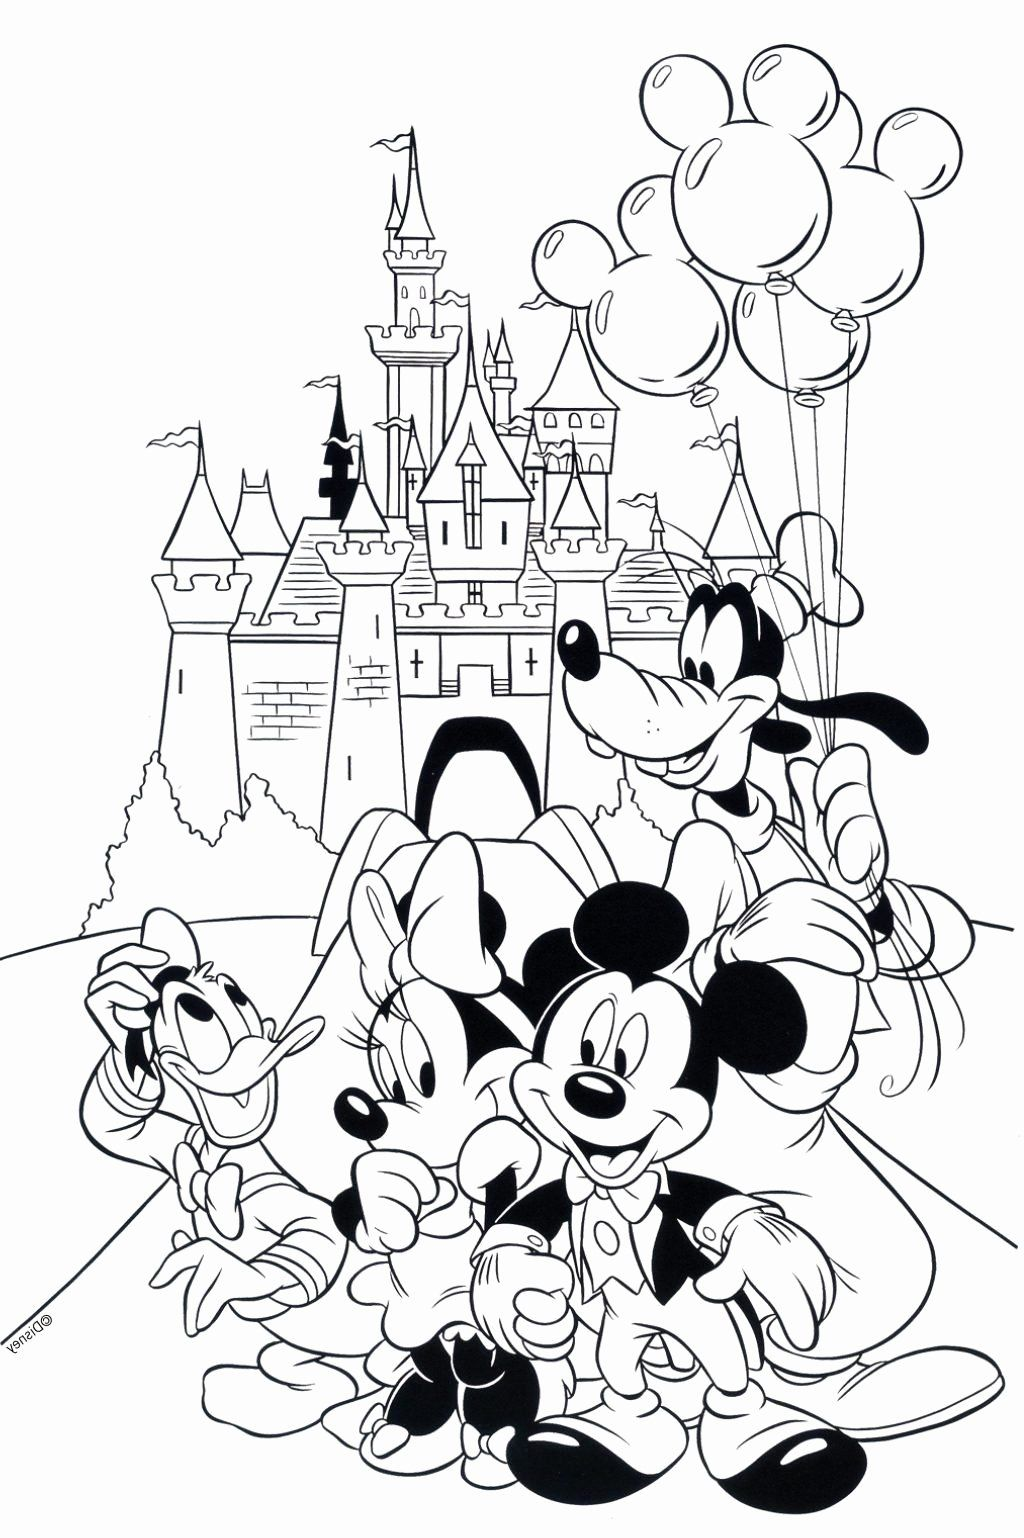 Disney Coloring Books For Adults Beautiful Cartoon Coloring Pages For Adults Awesome Colorin In 2020 Disney Coloring Pages Mickey Coloring Pages Disney Coloring Sheets